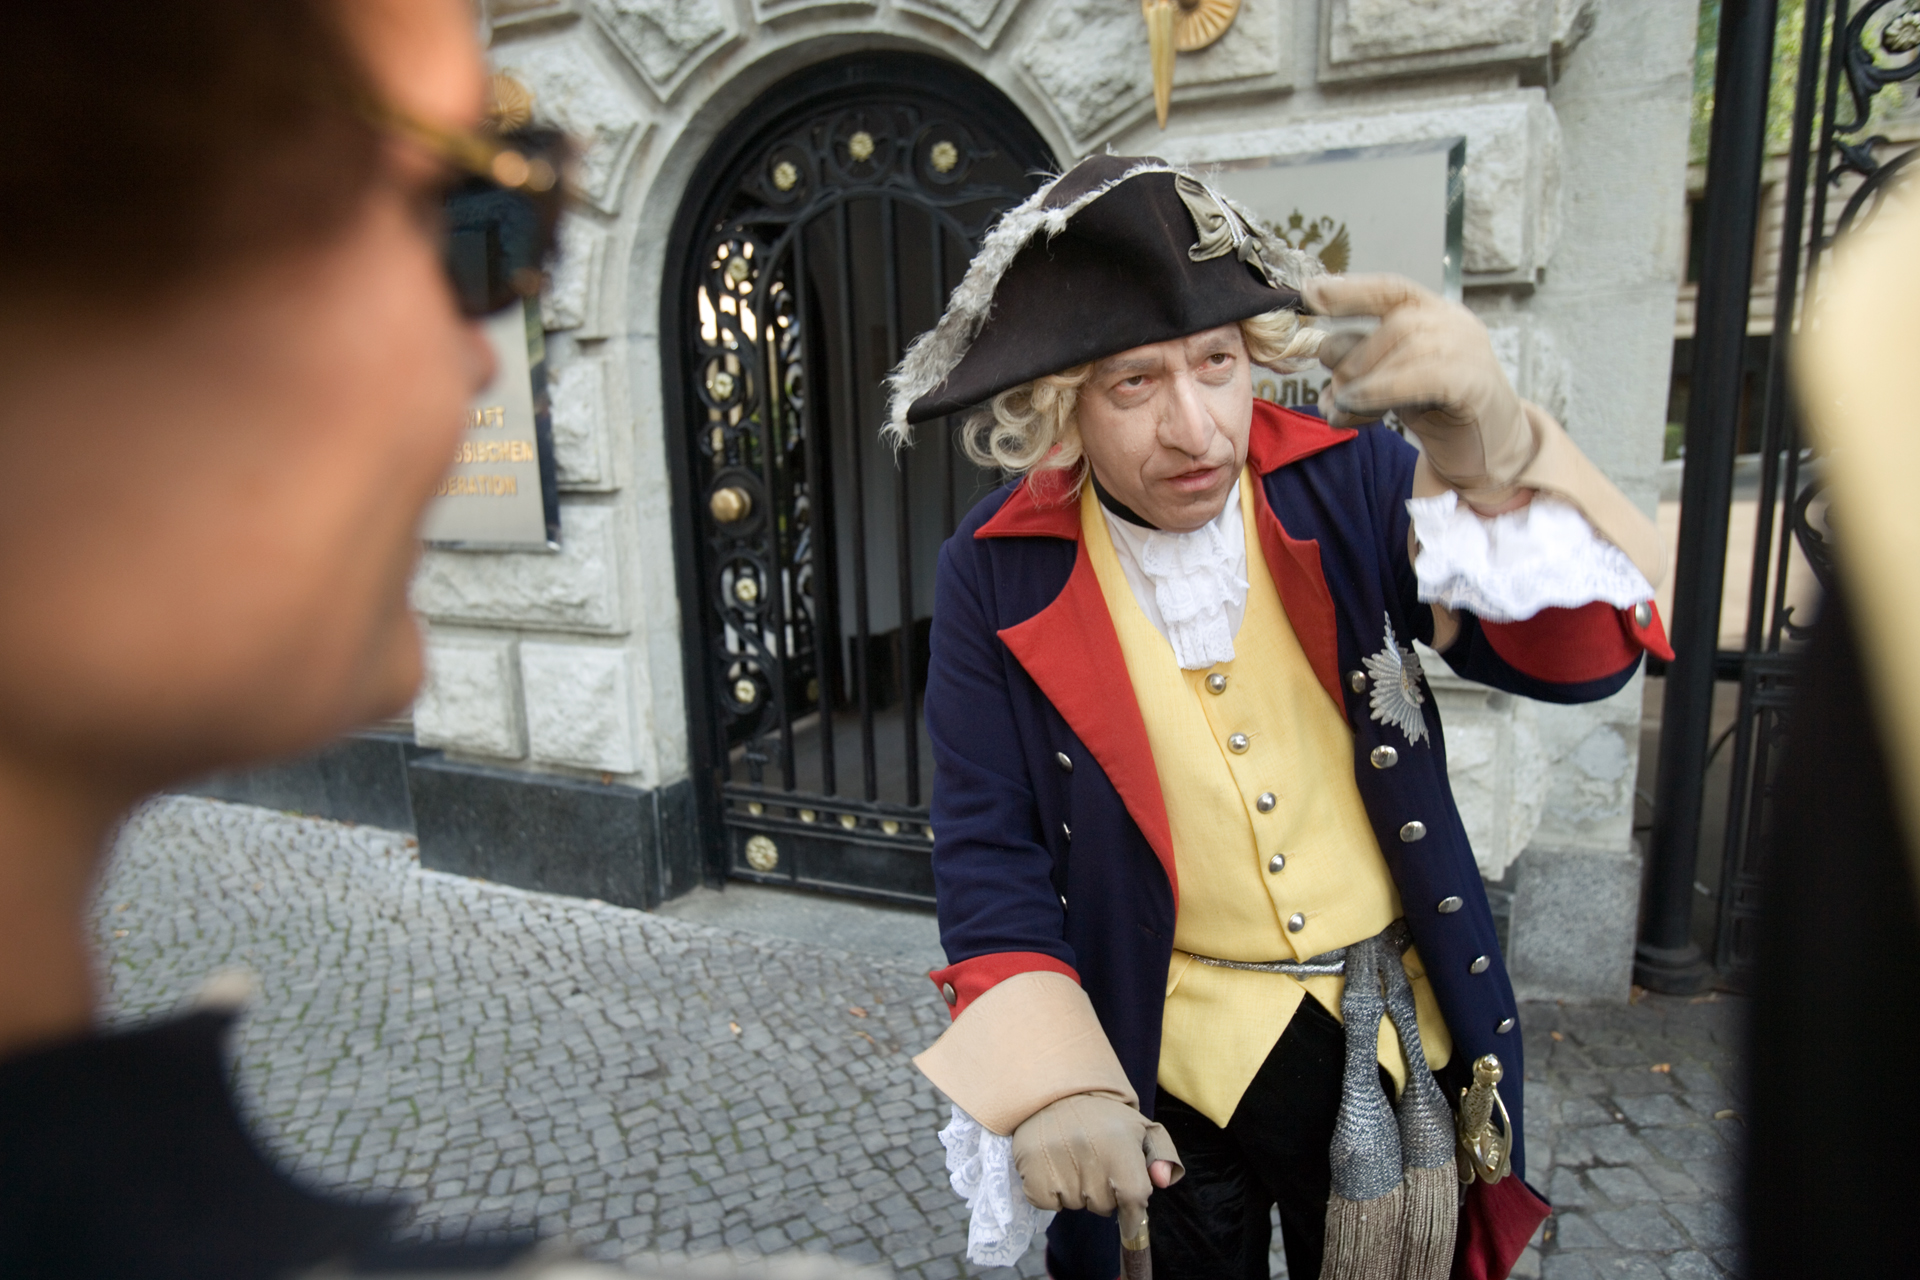 Evoking the ghost of King Friedrich II of Prussia, historian and sociologist Dr. Olaf Kappelt, gives daily walking tours through Berlin's historical center.  Berlin, Germany